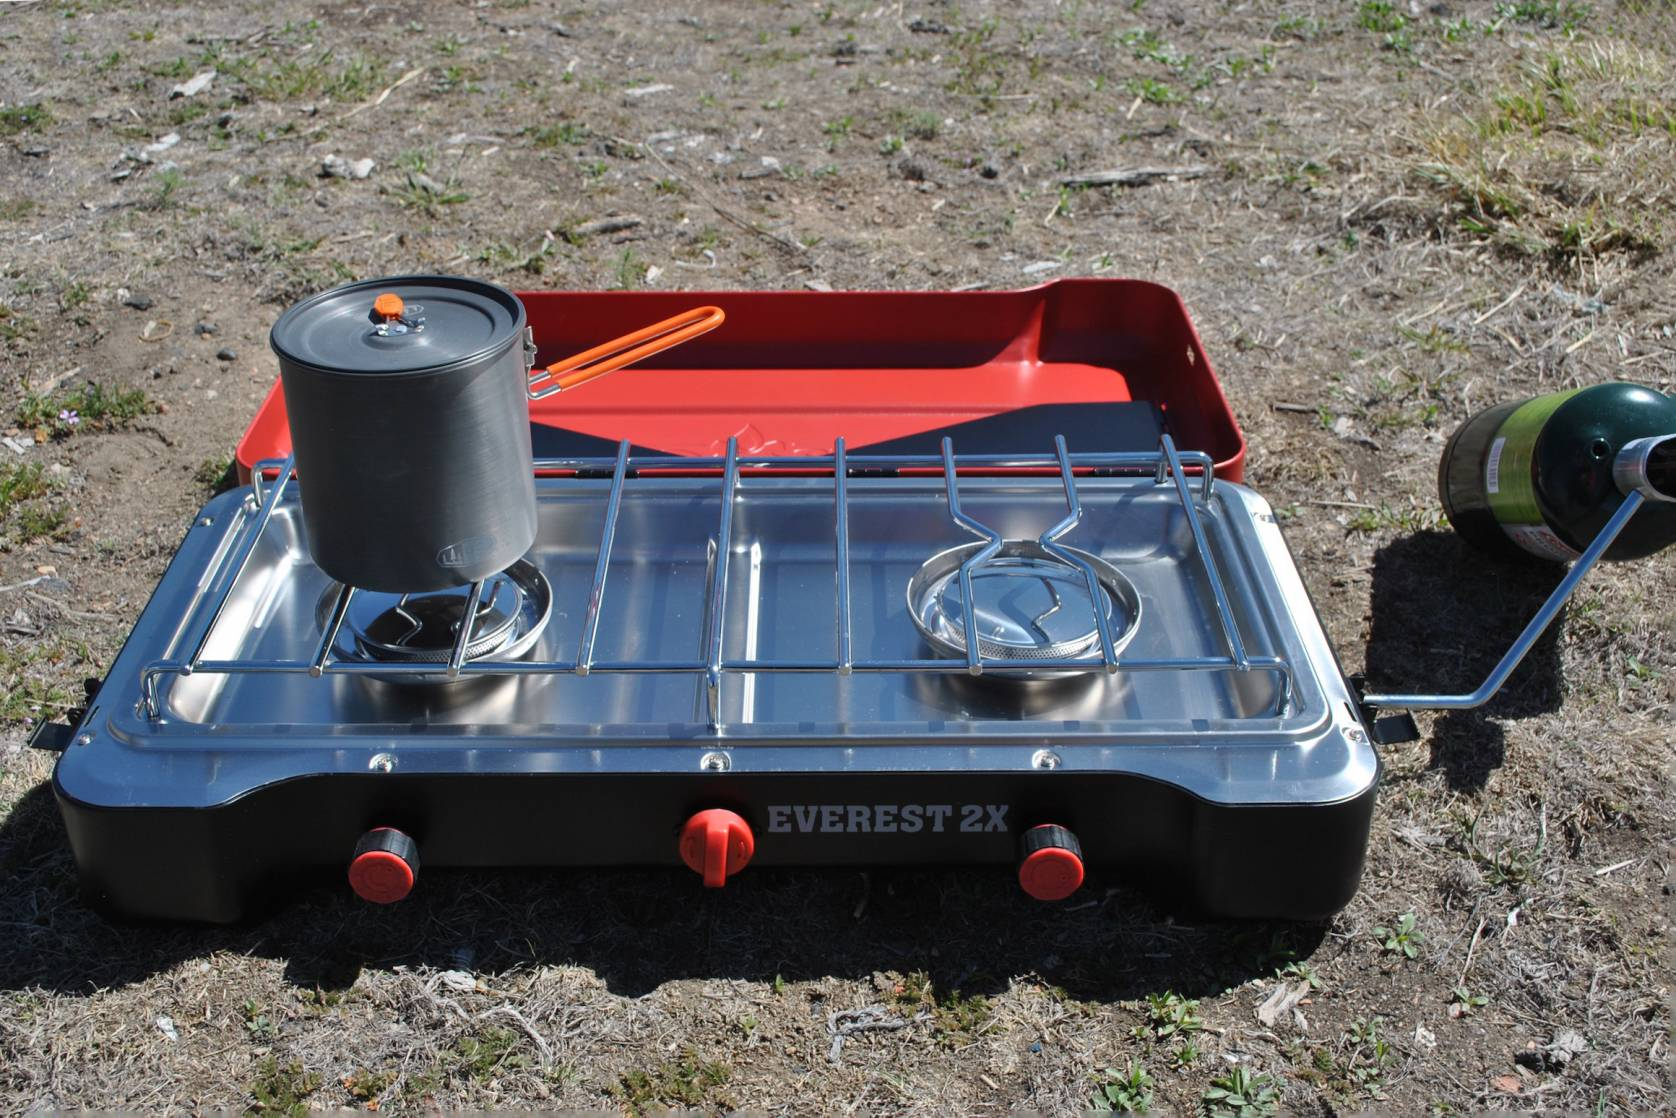 Camp Chef Everest 2x High Pressure Stove open